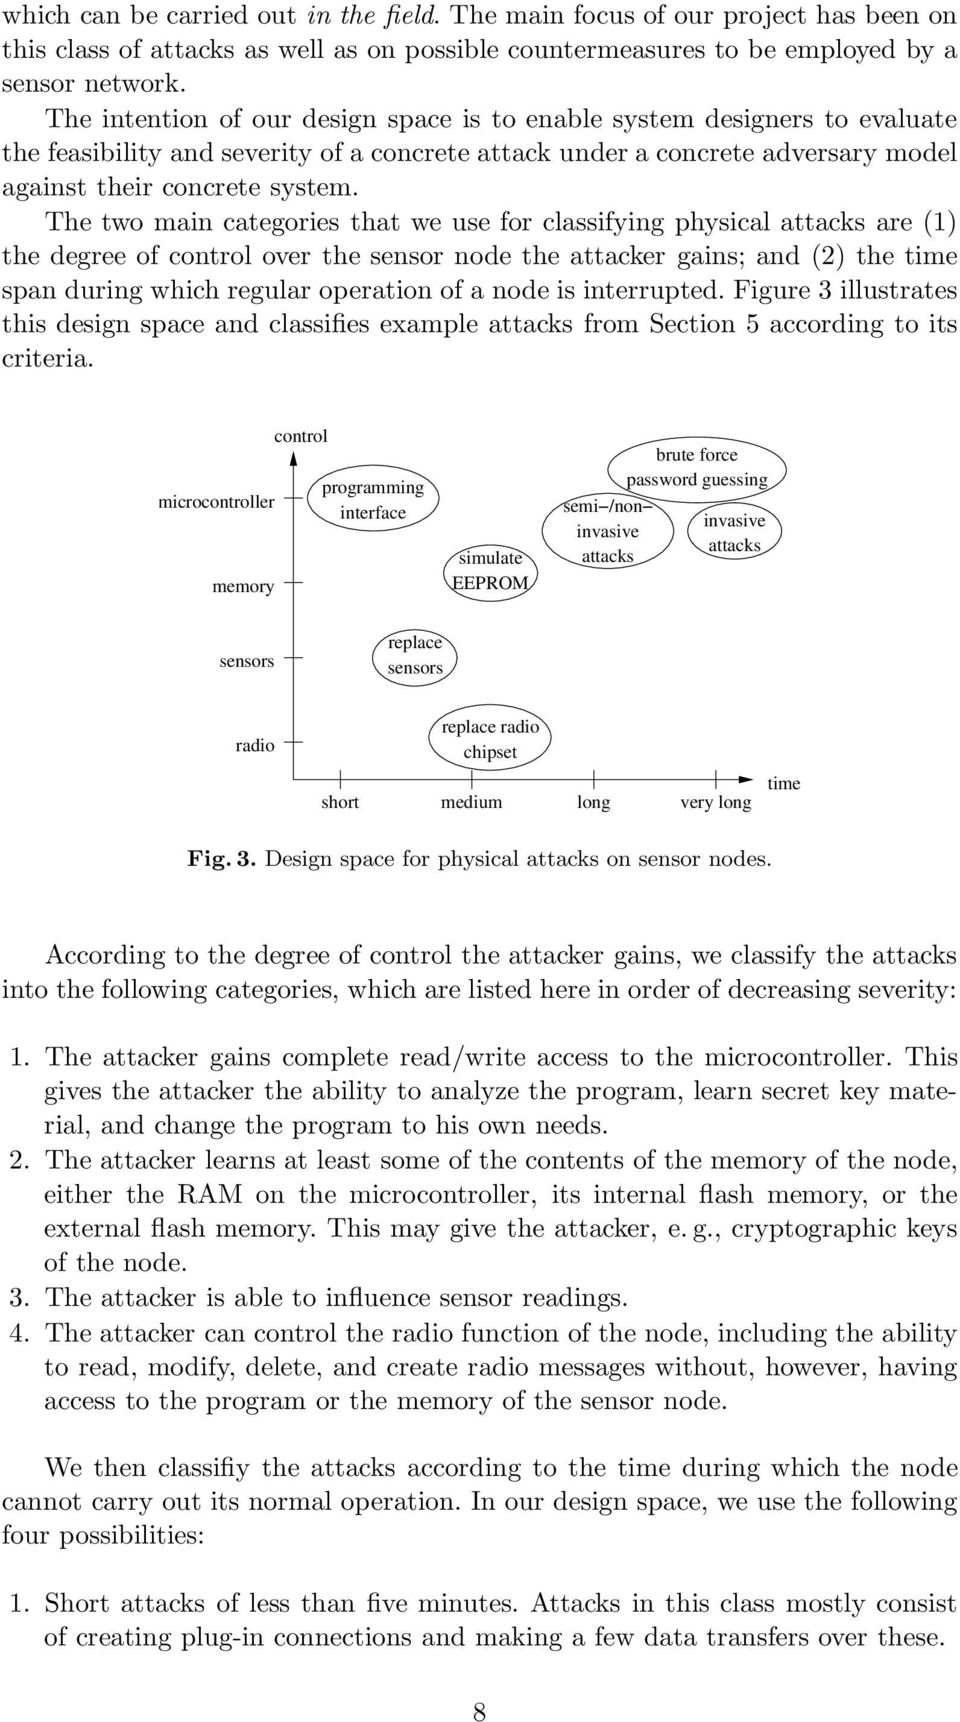 The two main categories that we use for classifying physical attacks are (1) the degree of control over the sensor node the attacker gains; and (2) the time span during which regular operation of a